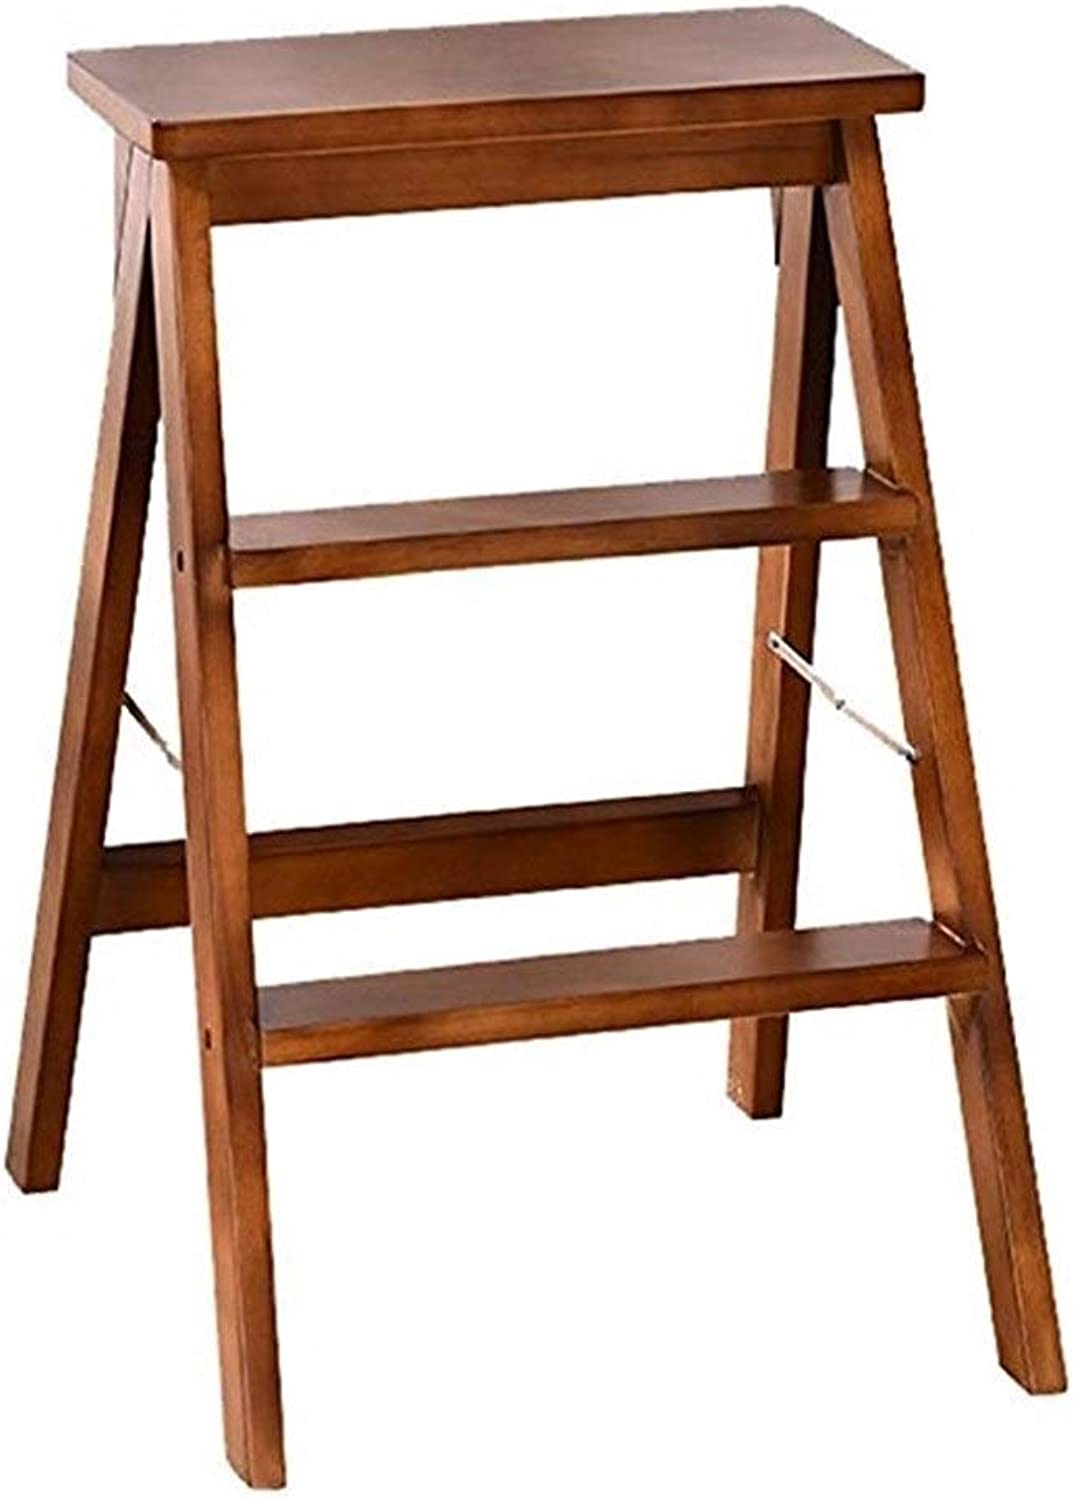 YJLGRYF Step Stool Wooden Utility Step Multi-Functional Small Ladder Chairs Step Stool Ideal for A Home (color   B)